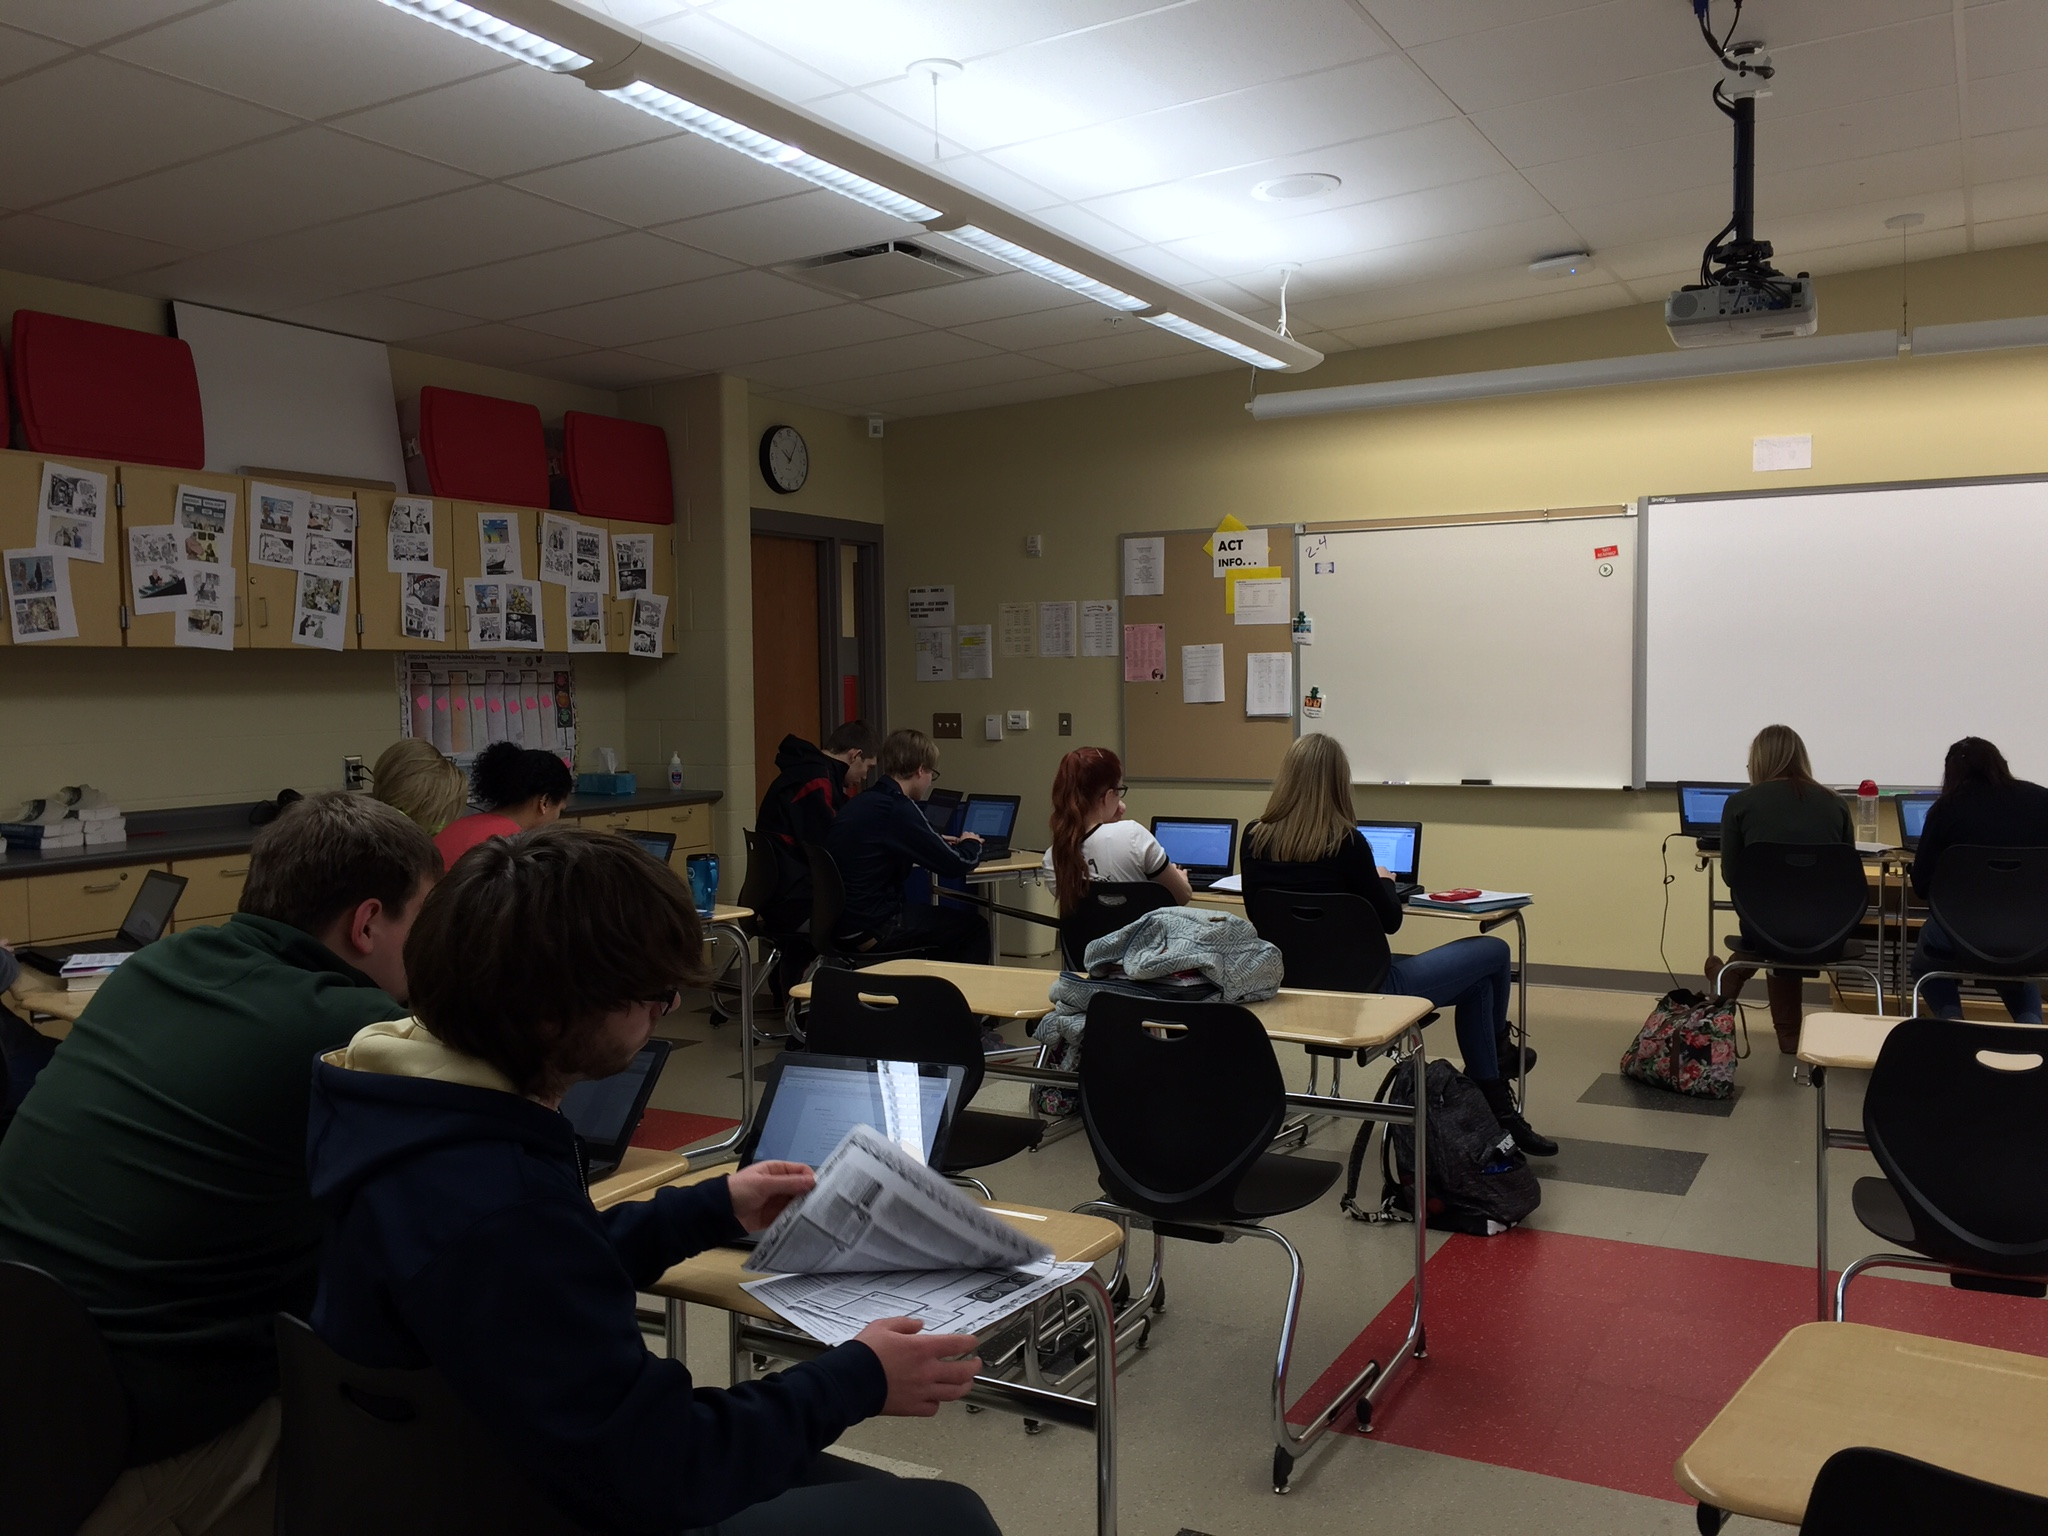 Students at Orrville High School use Chromebooks in the classroom as part of the 1:1 technology program.